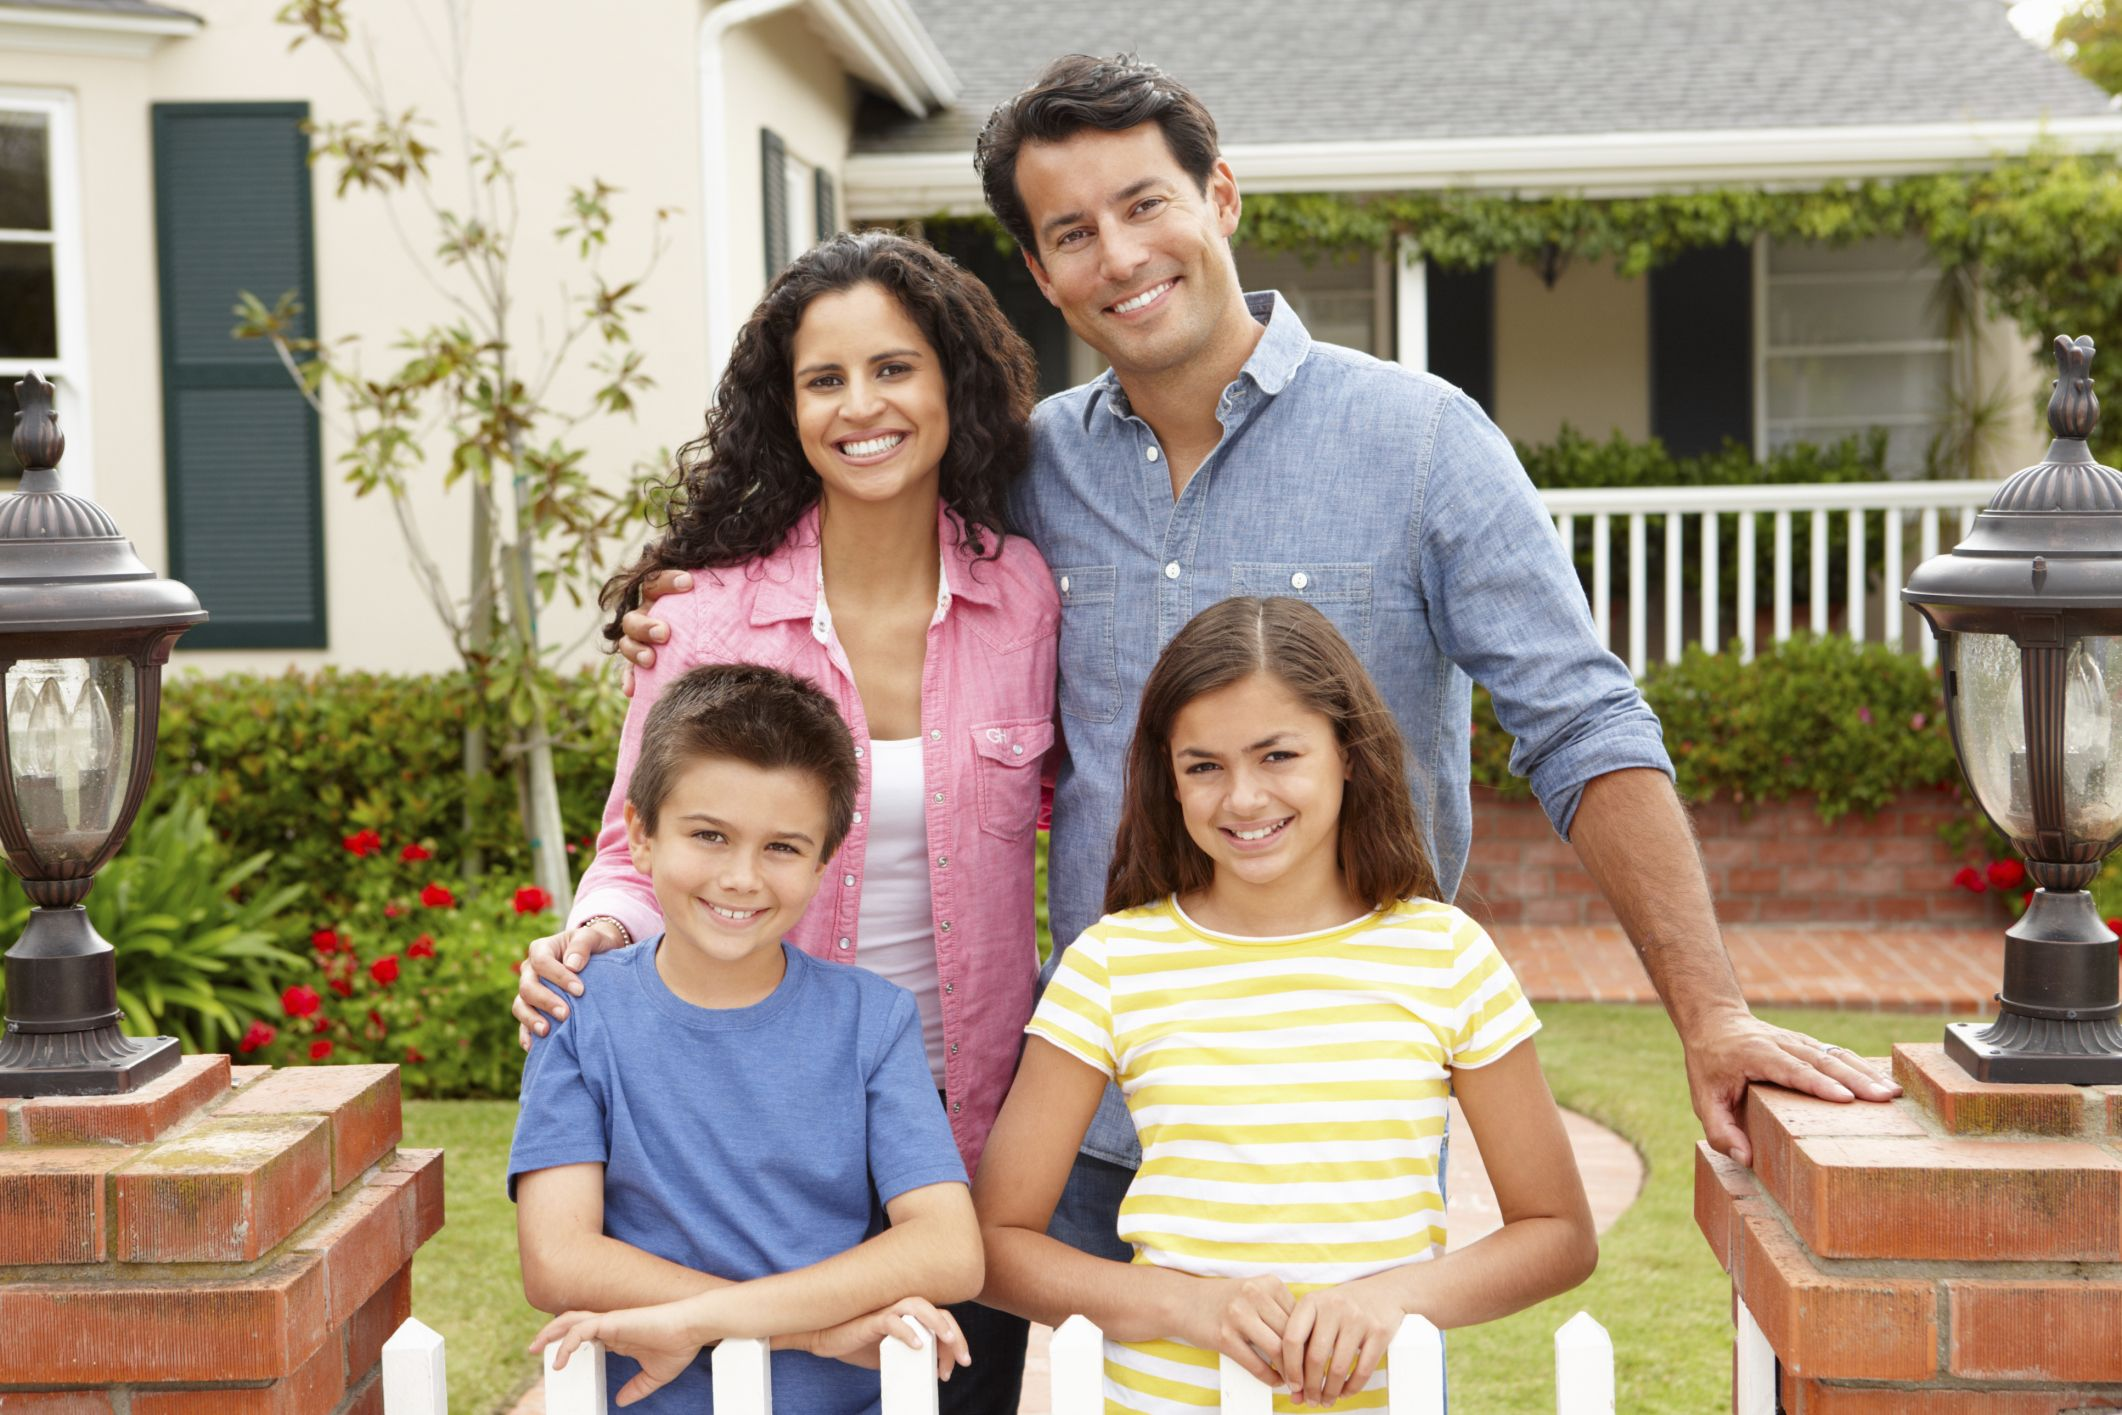 How To Remove The Mortgage Insurance Premium From An Fha Loan